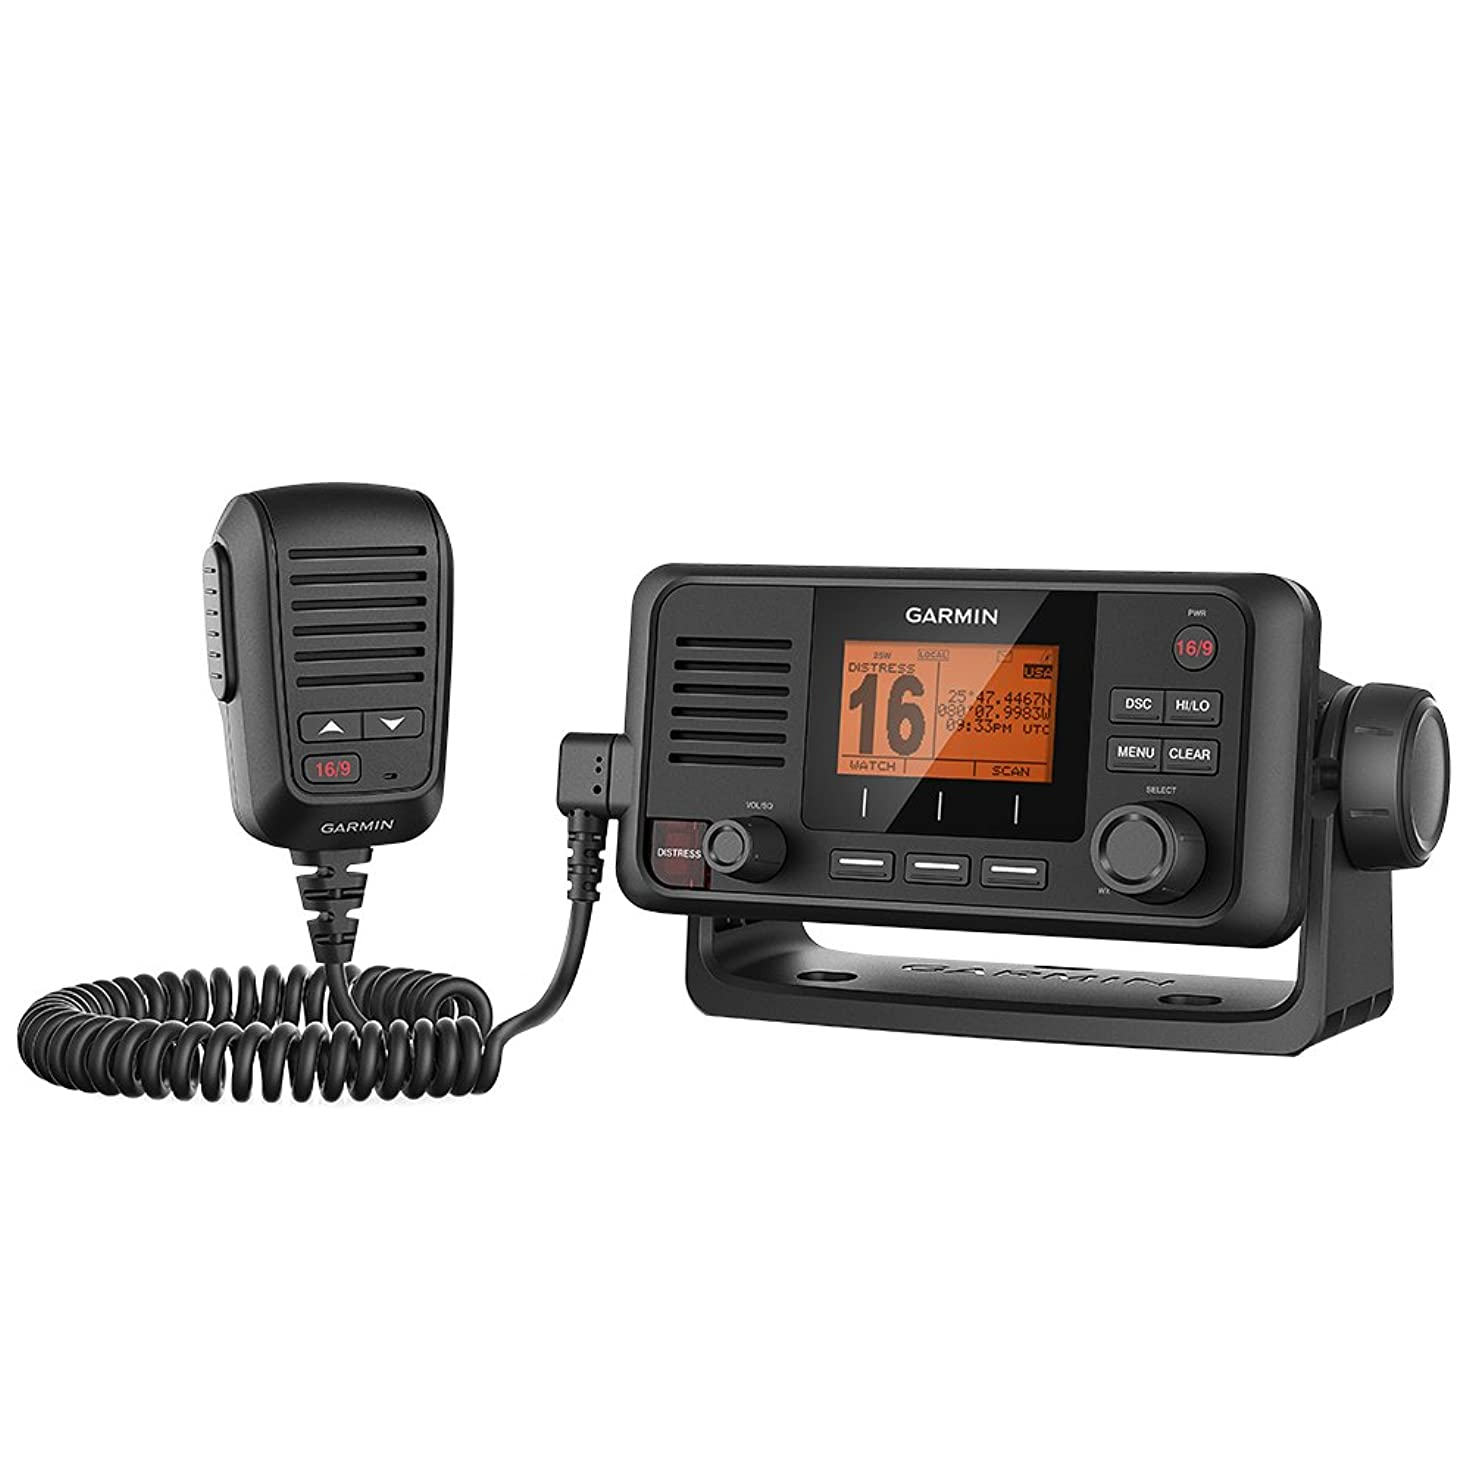 Garmin 0100165300 VHF, 110, with Basic Functions